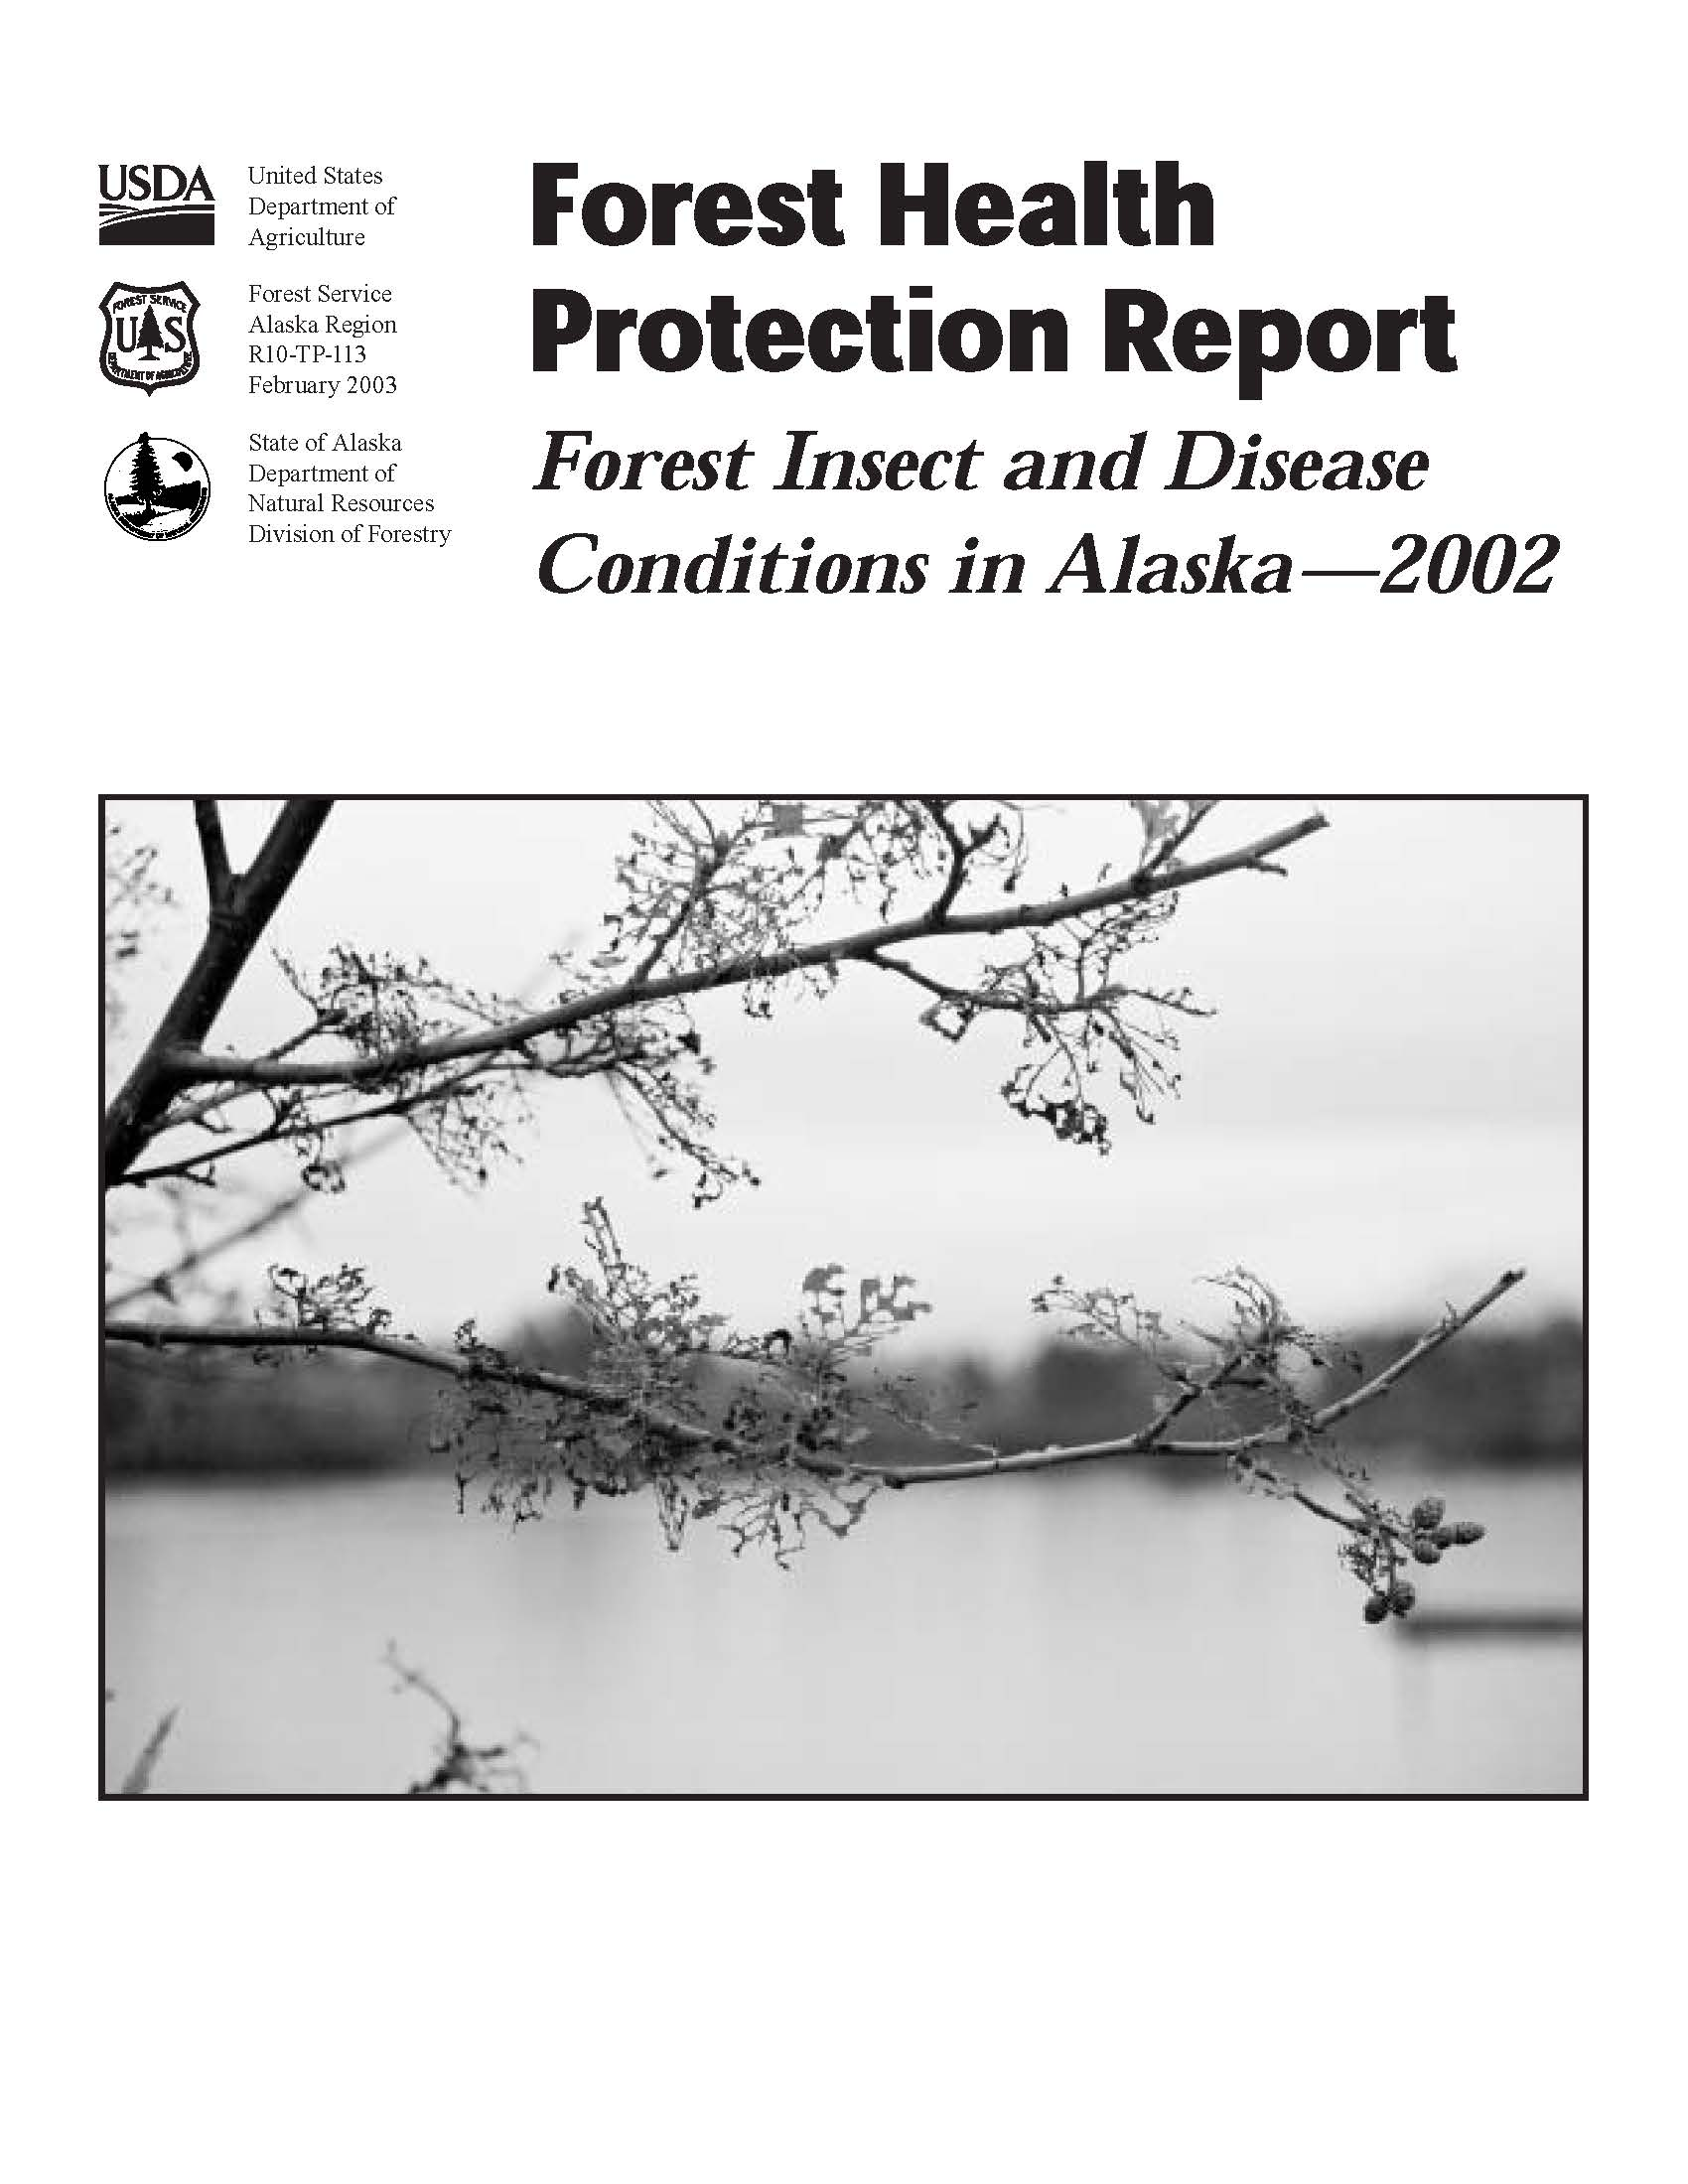 Cover of the 2002 Forest Health Conditions in Alaska Report.